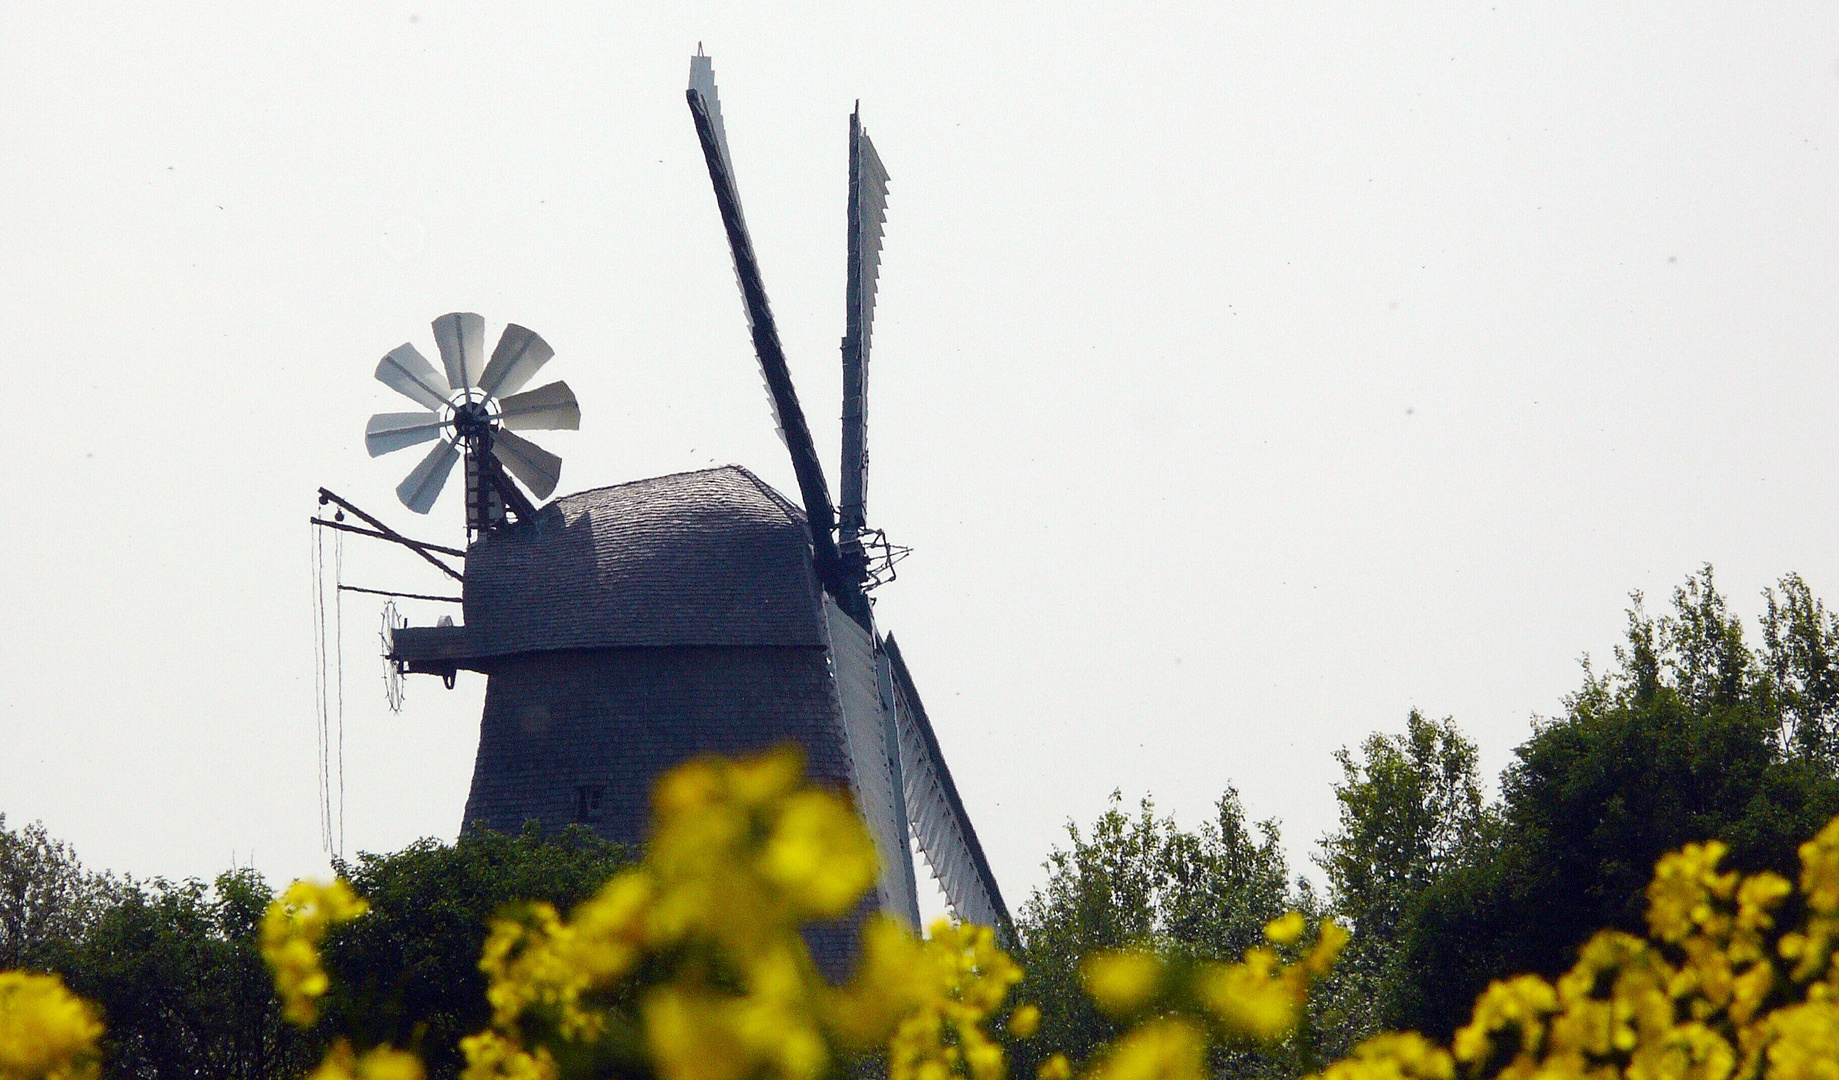 Windmühle in Exter (OWL) # 1